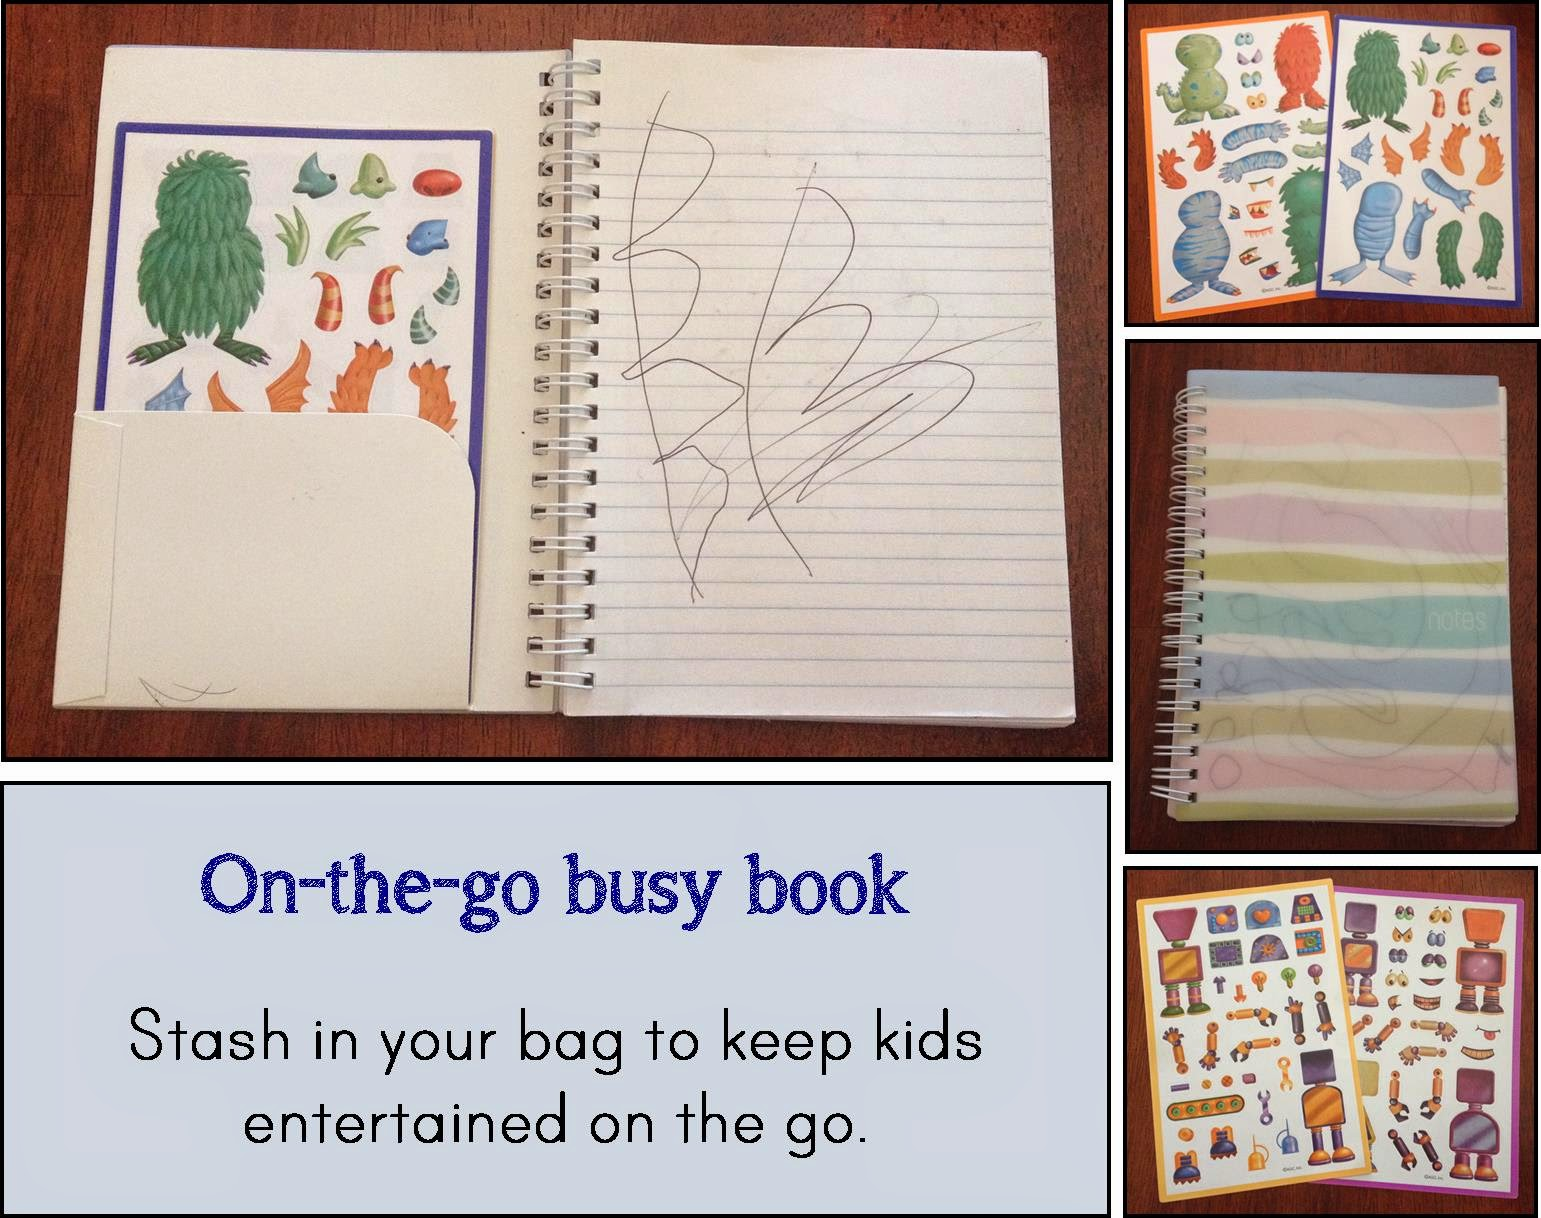 Keep kids entertained at restaurants or out and about with this easy to carry notebook.